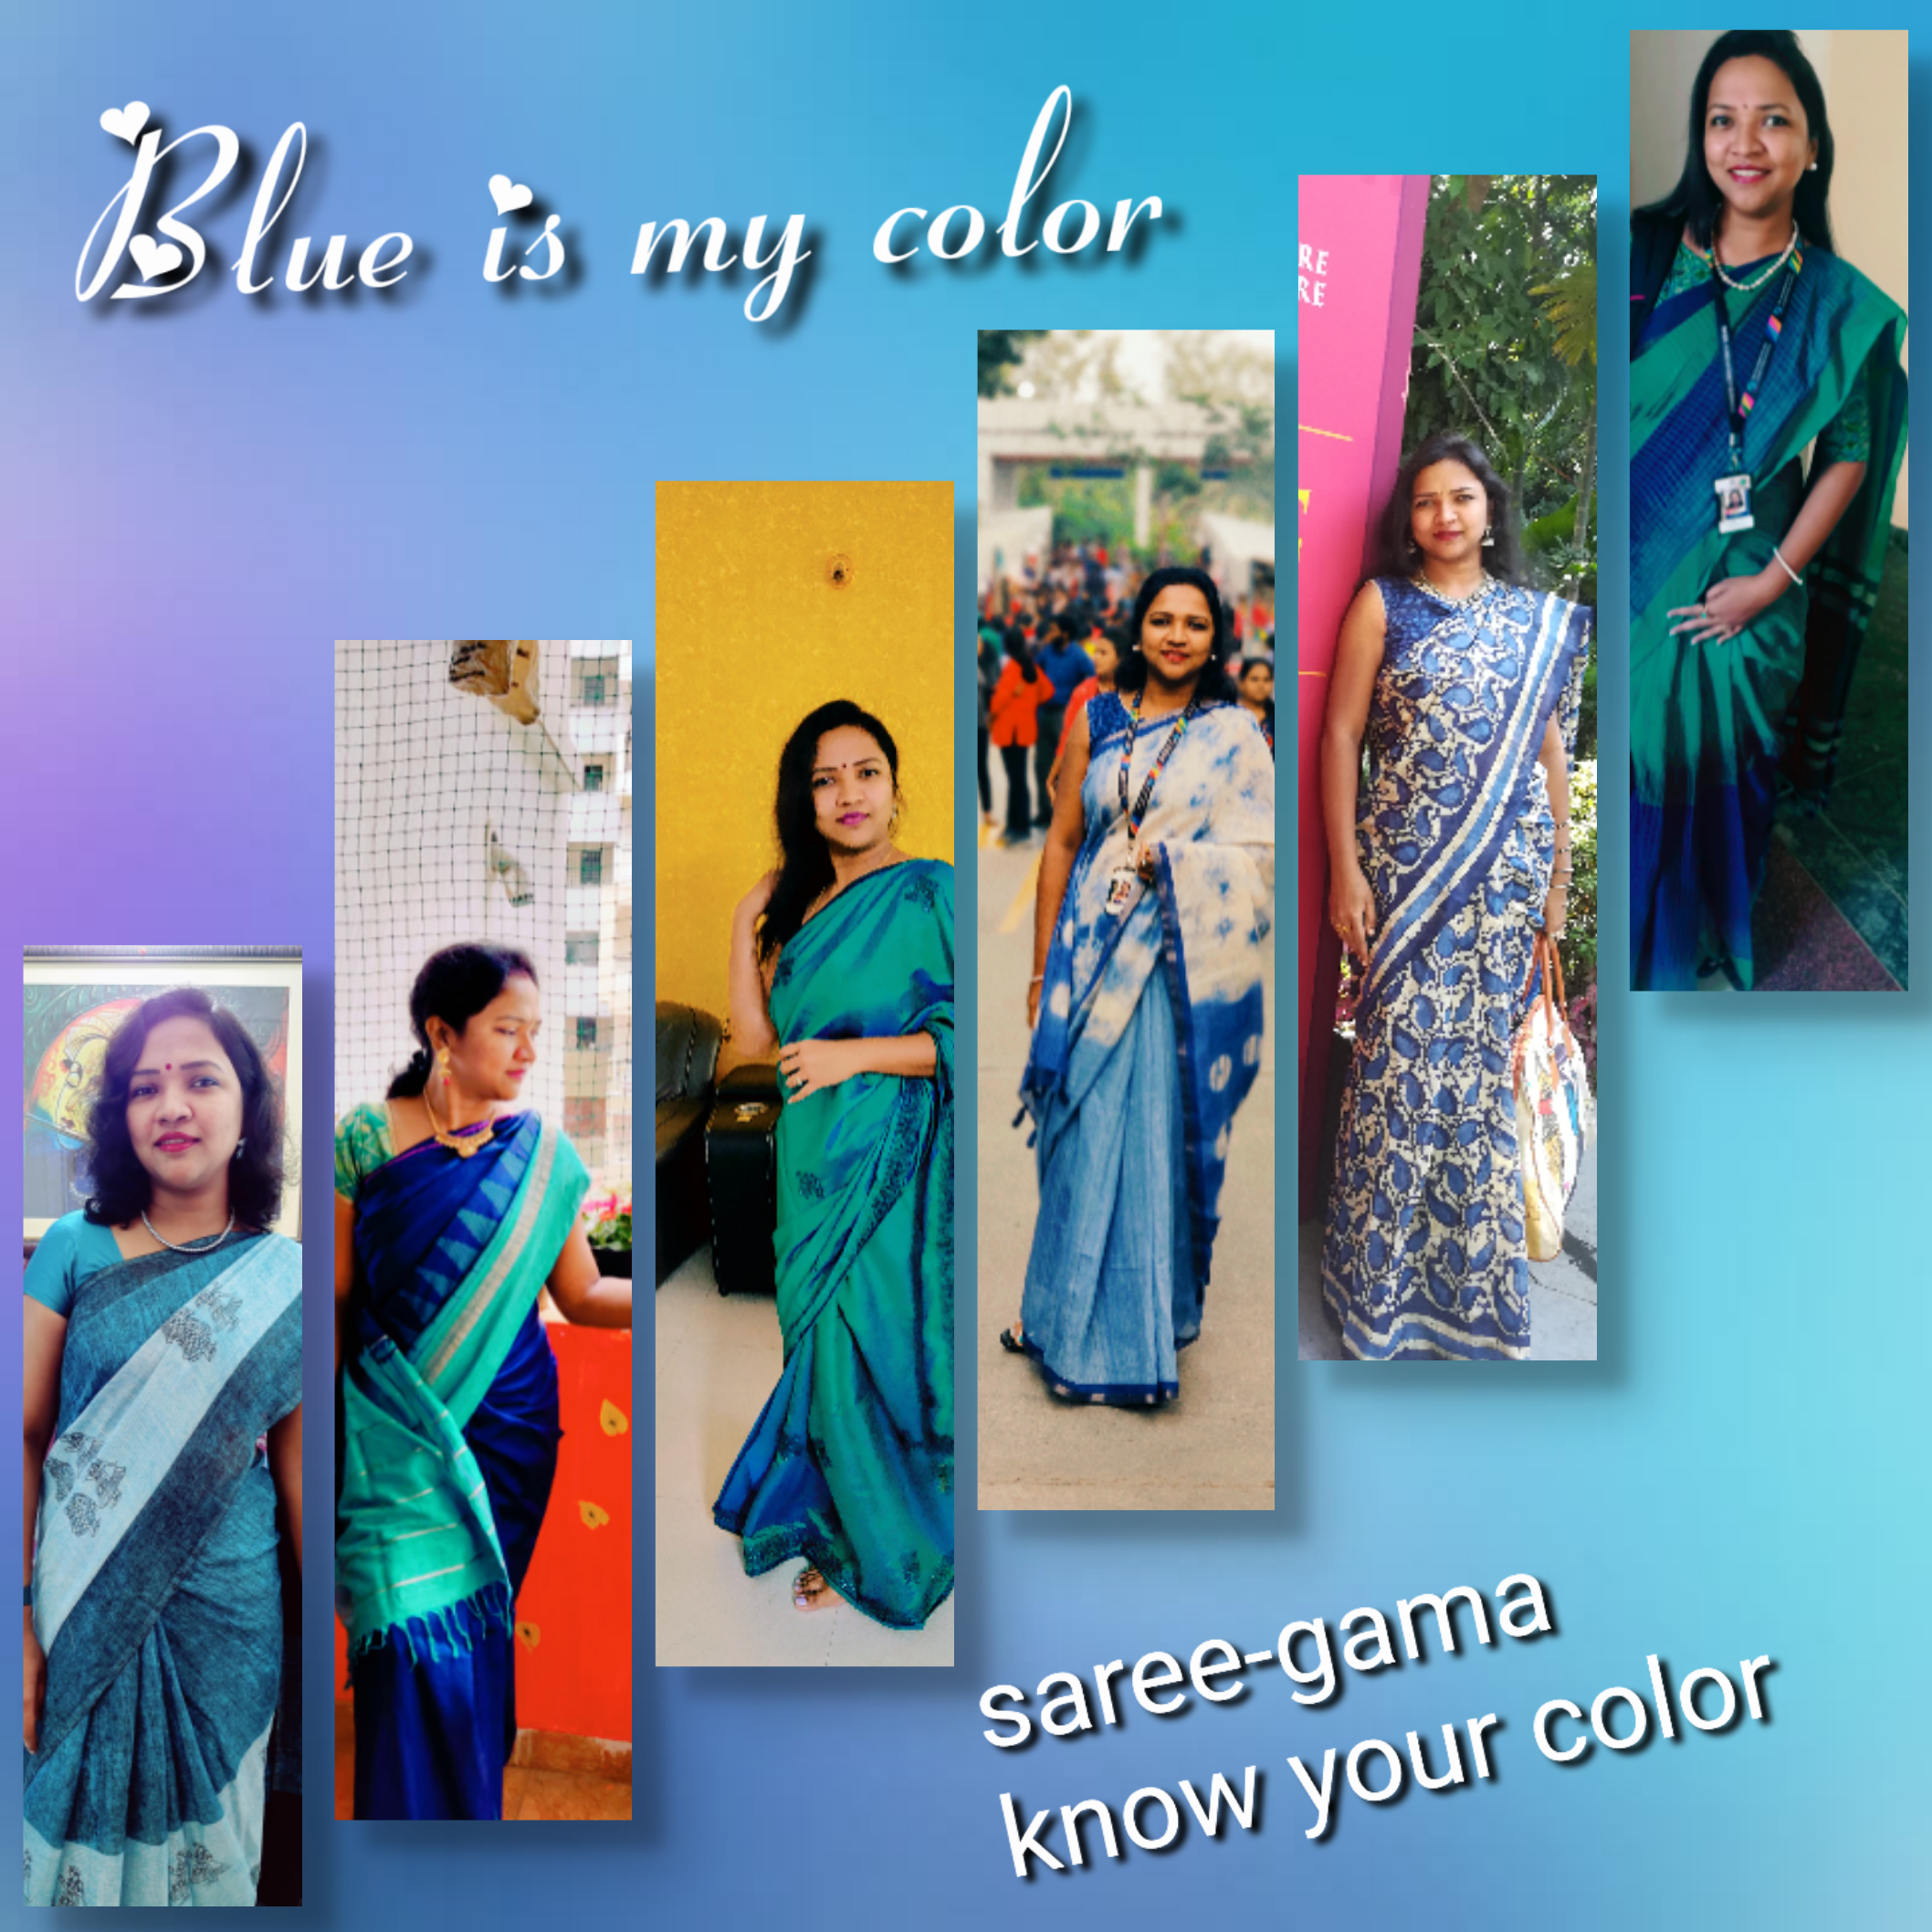 Saree-gama Know Your Colour